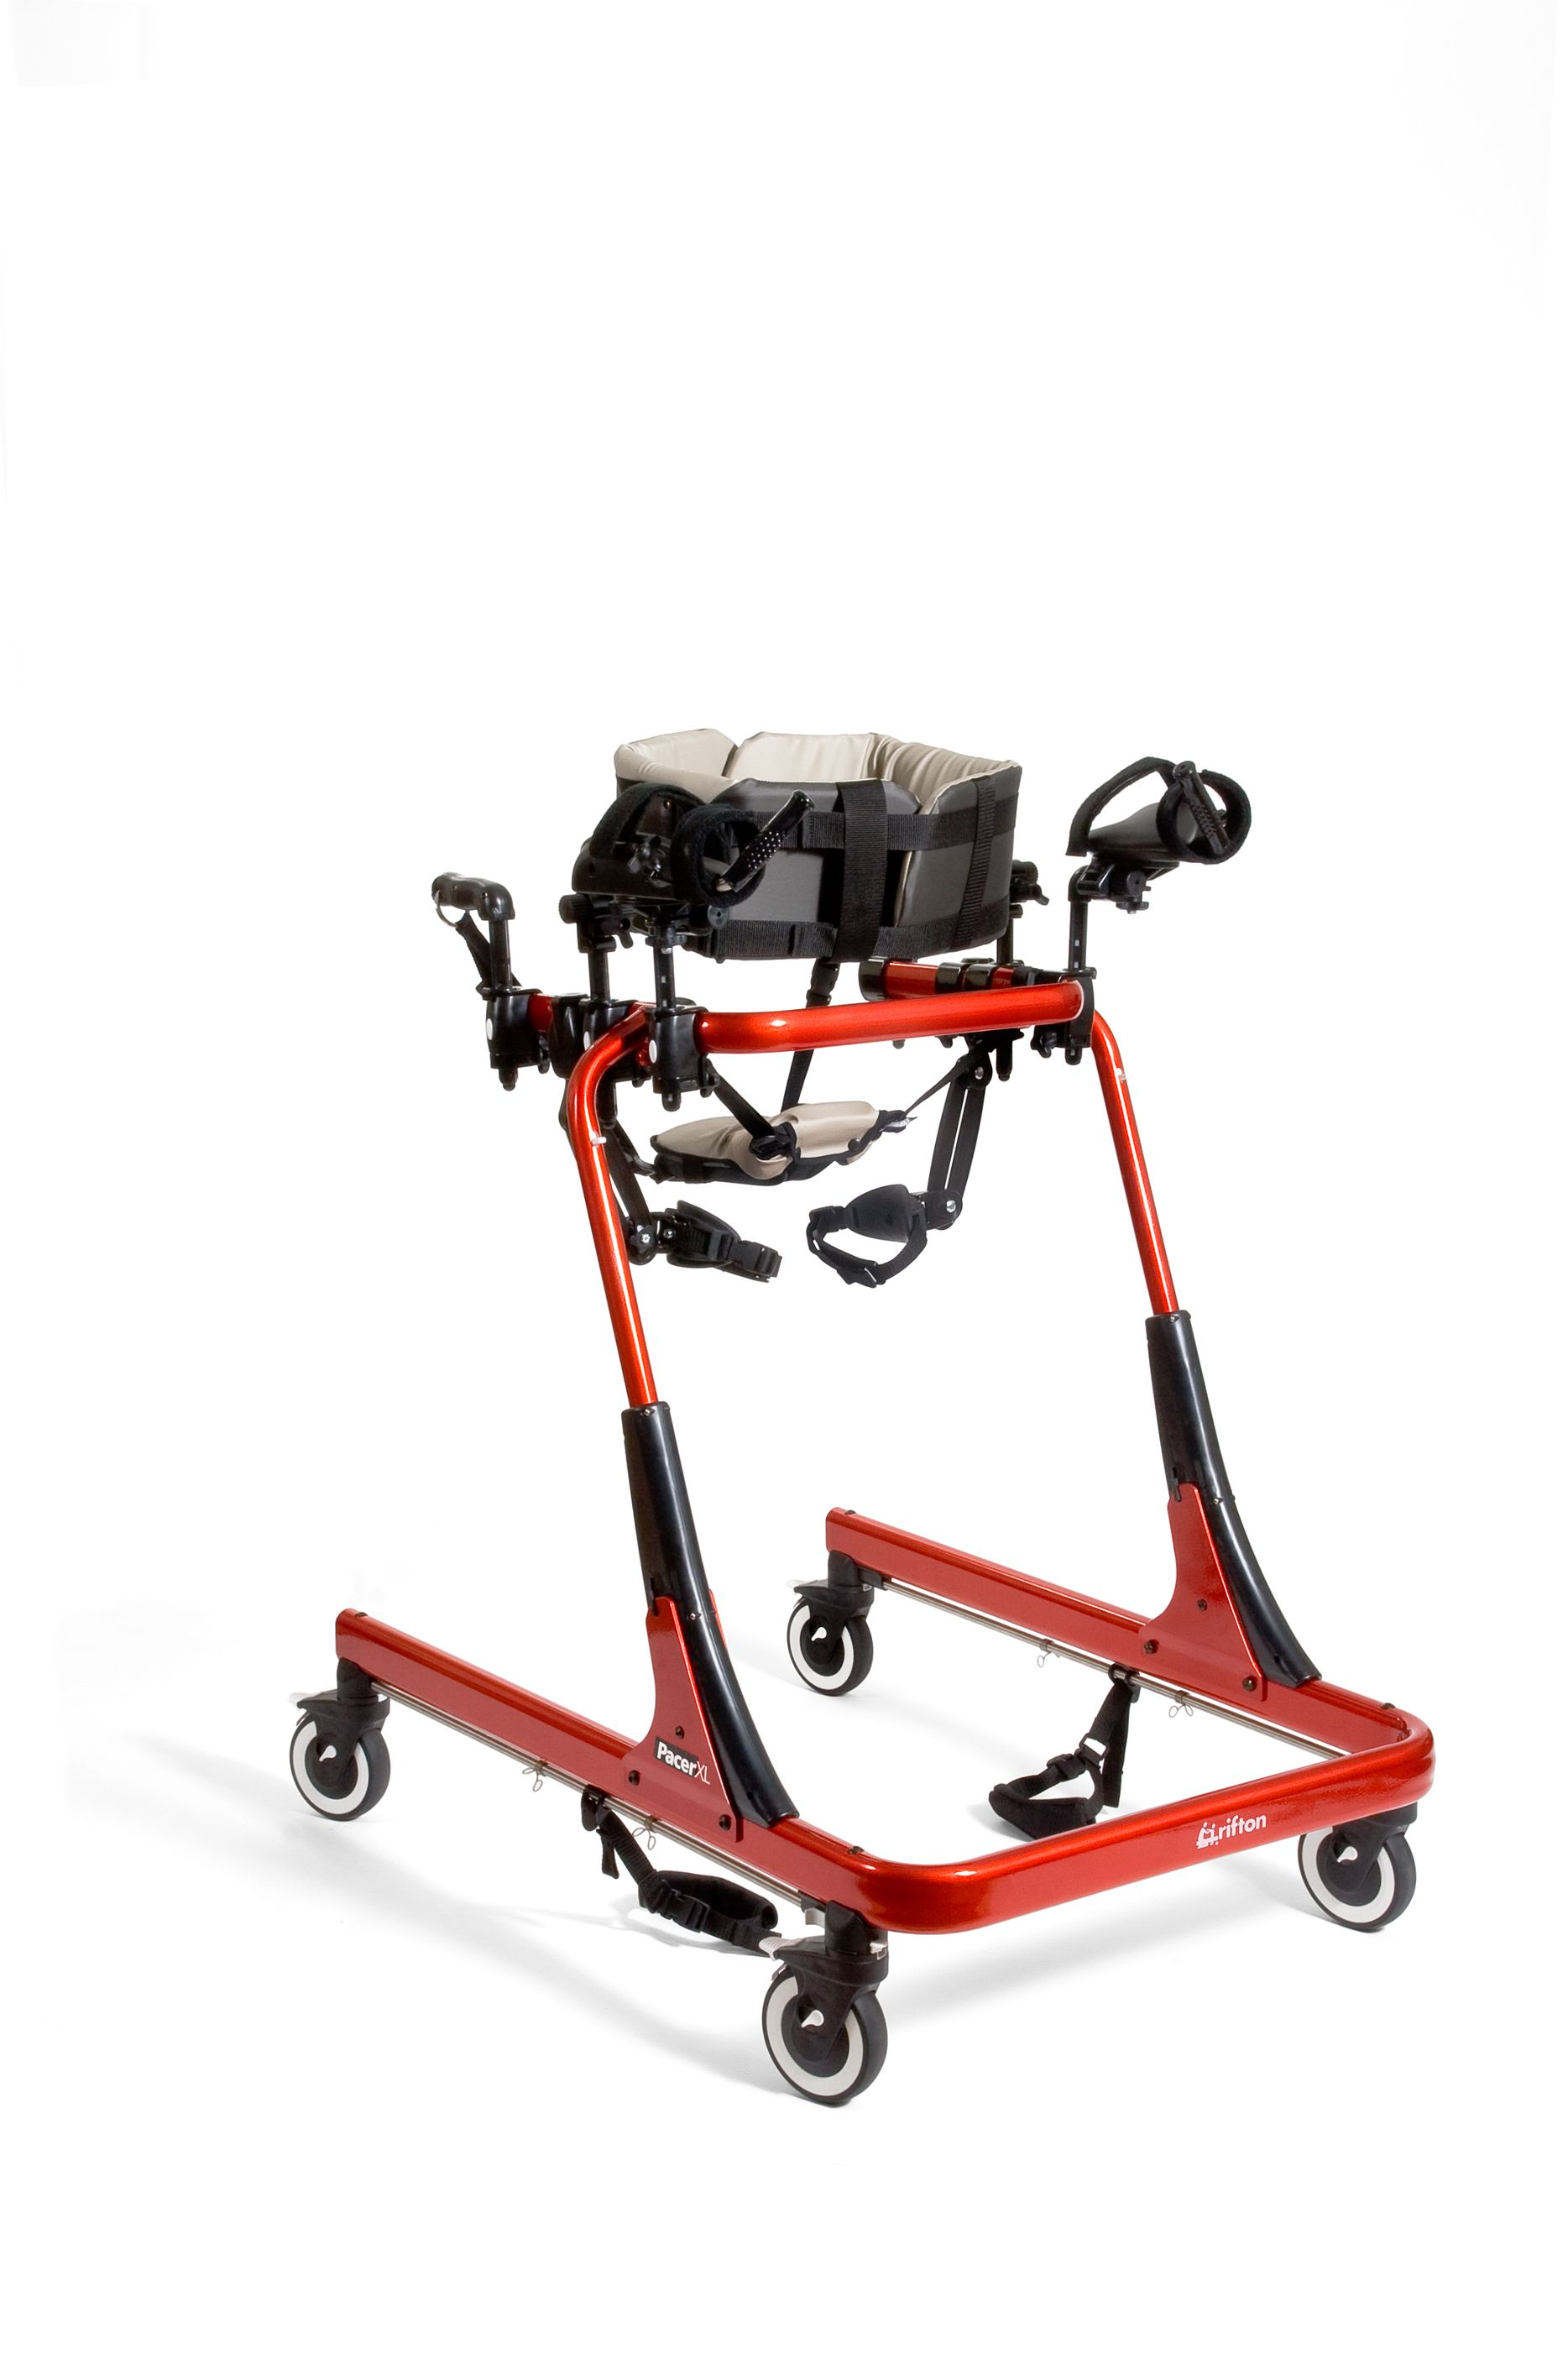 off Mobility Equipment  Assistive Devices  Home Mobility Products   Starlifts  Power Wheelchairs  Walking Aids  Handicap Elevators and more for  Home use. Gait Trainer Mobility Aid  HomeMobilityAids    See more about home